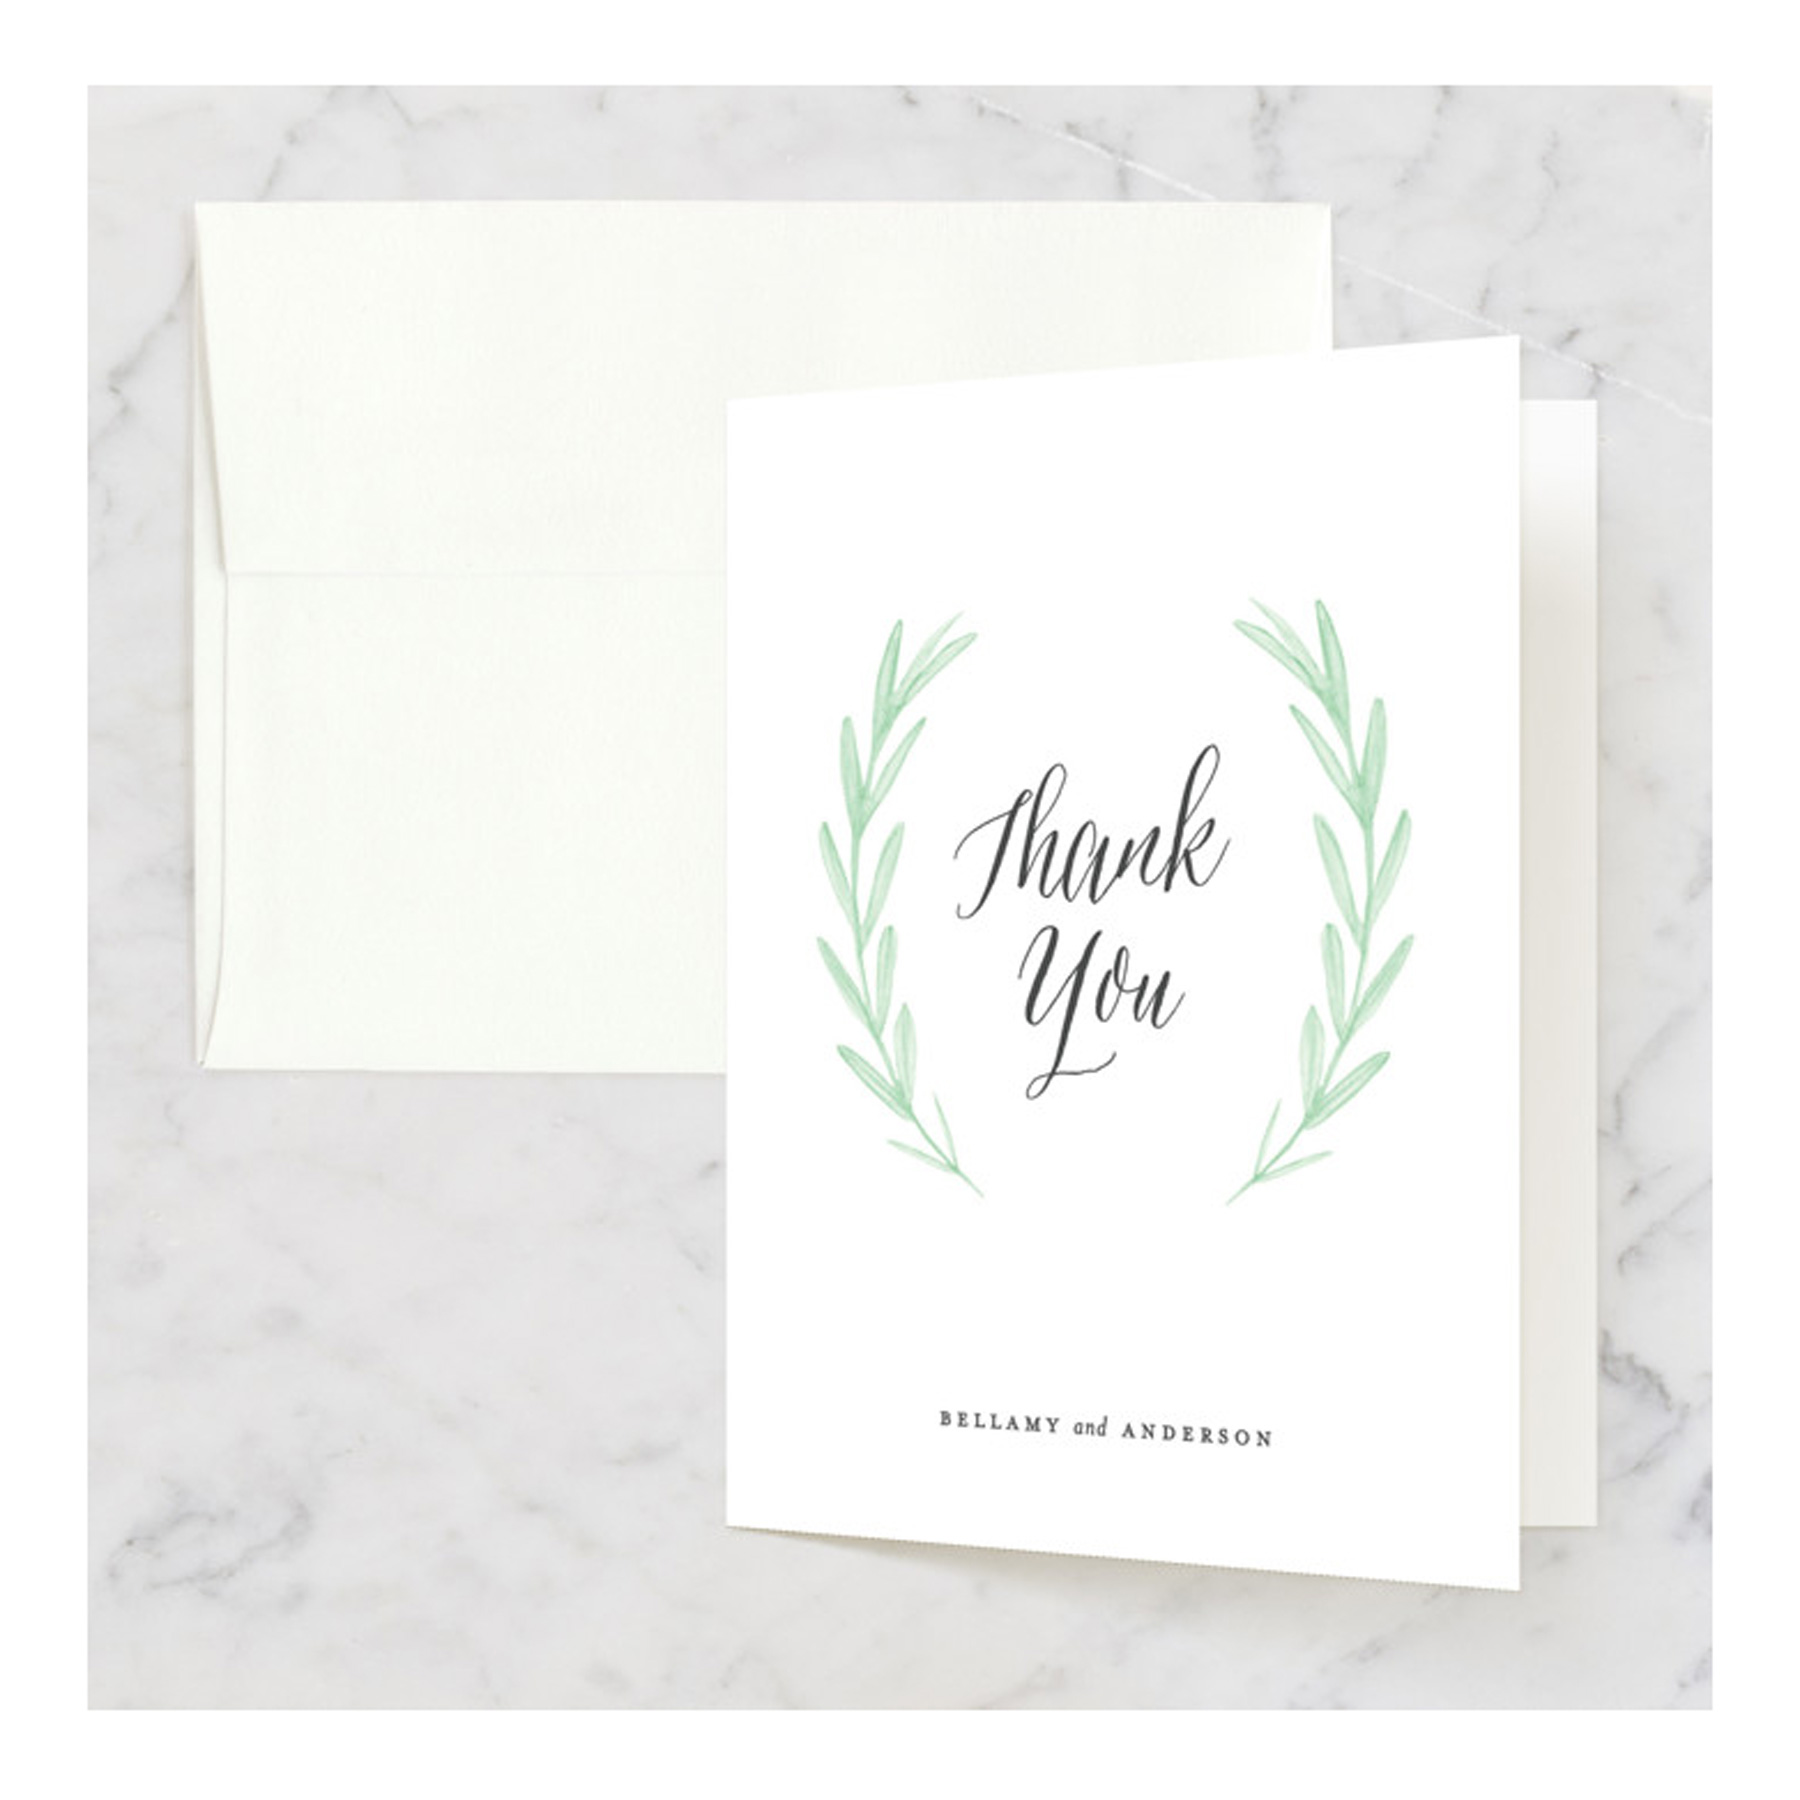 Engagement Gifts Ideas: Minted custom thank you stationery for couples